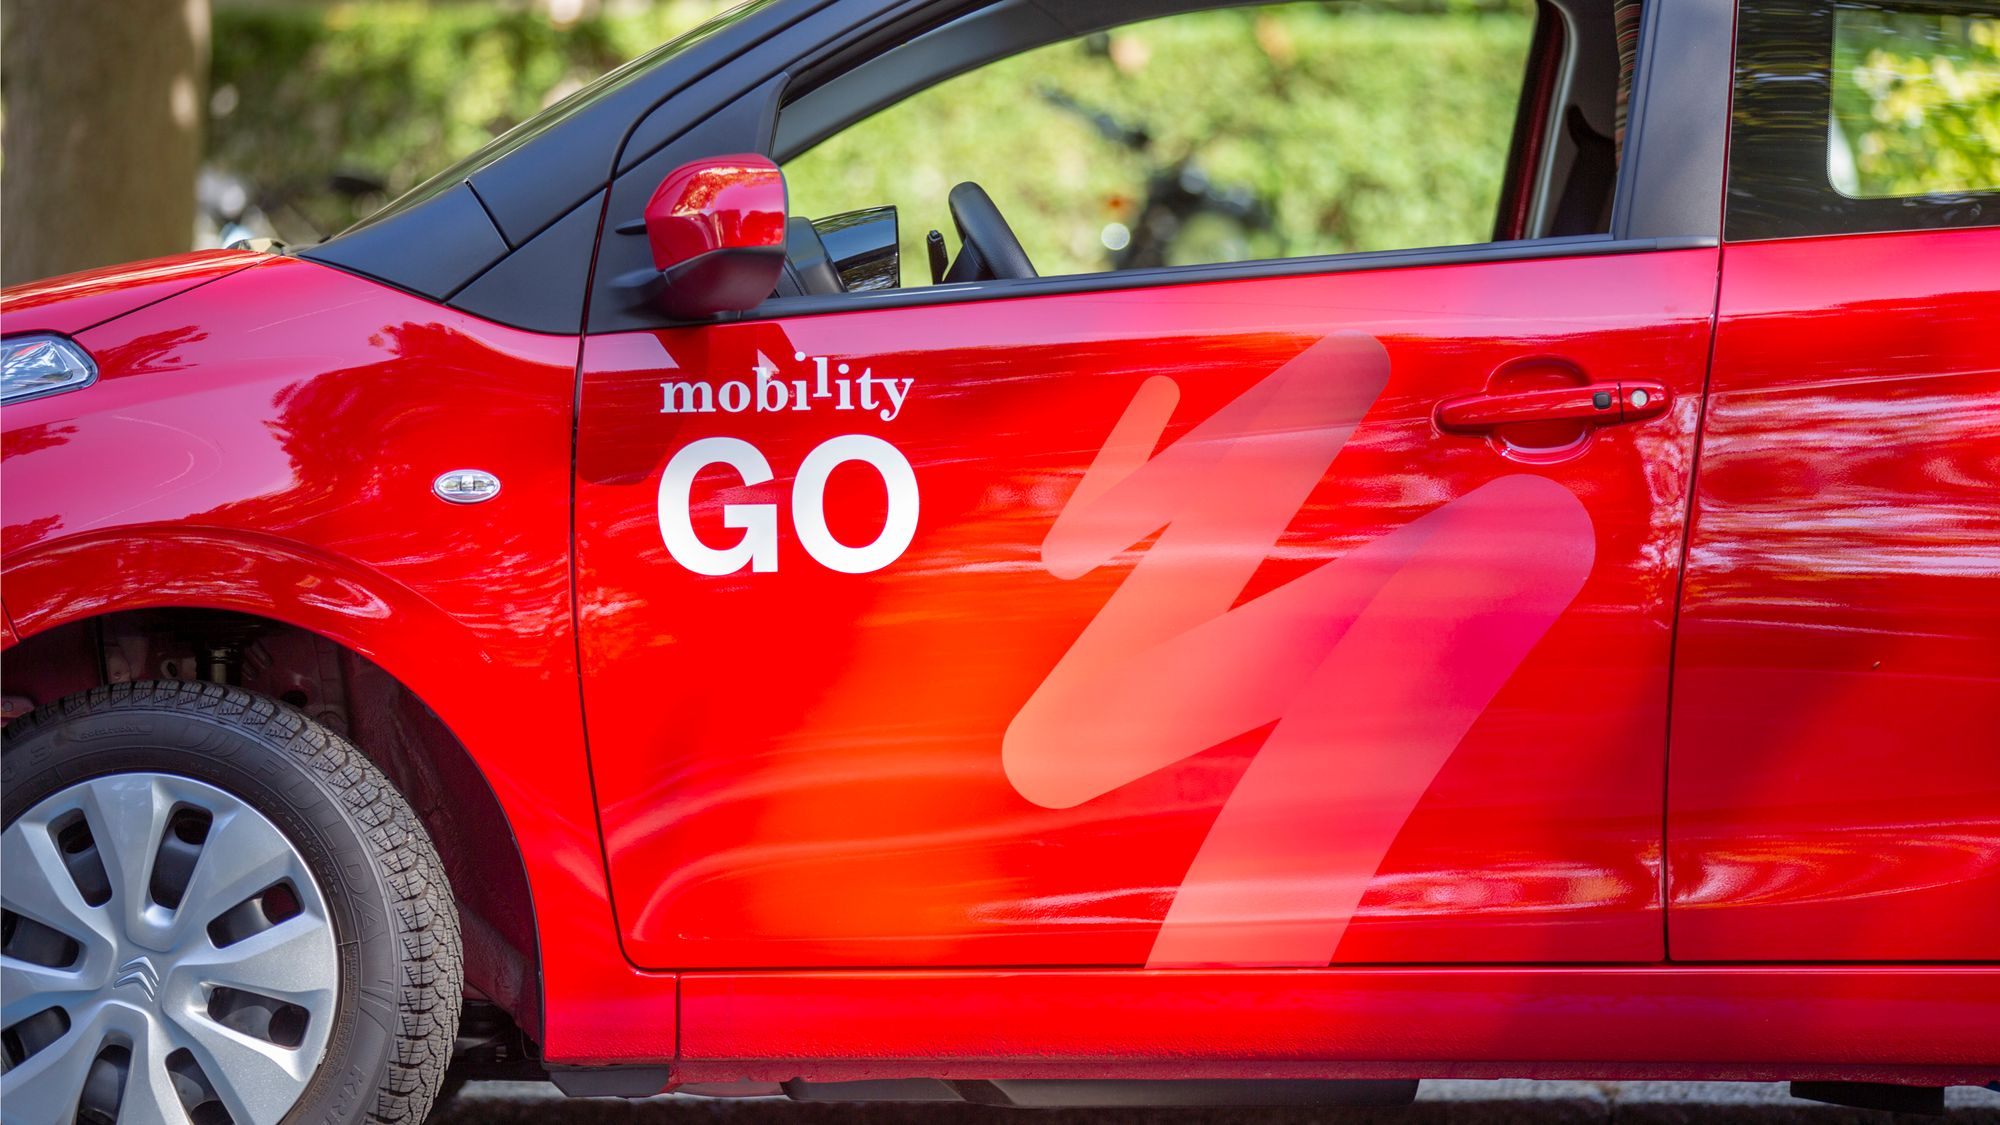 «Mobility Go» in Genf am Ende